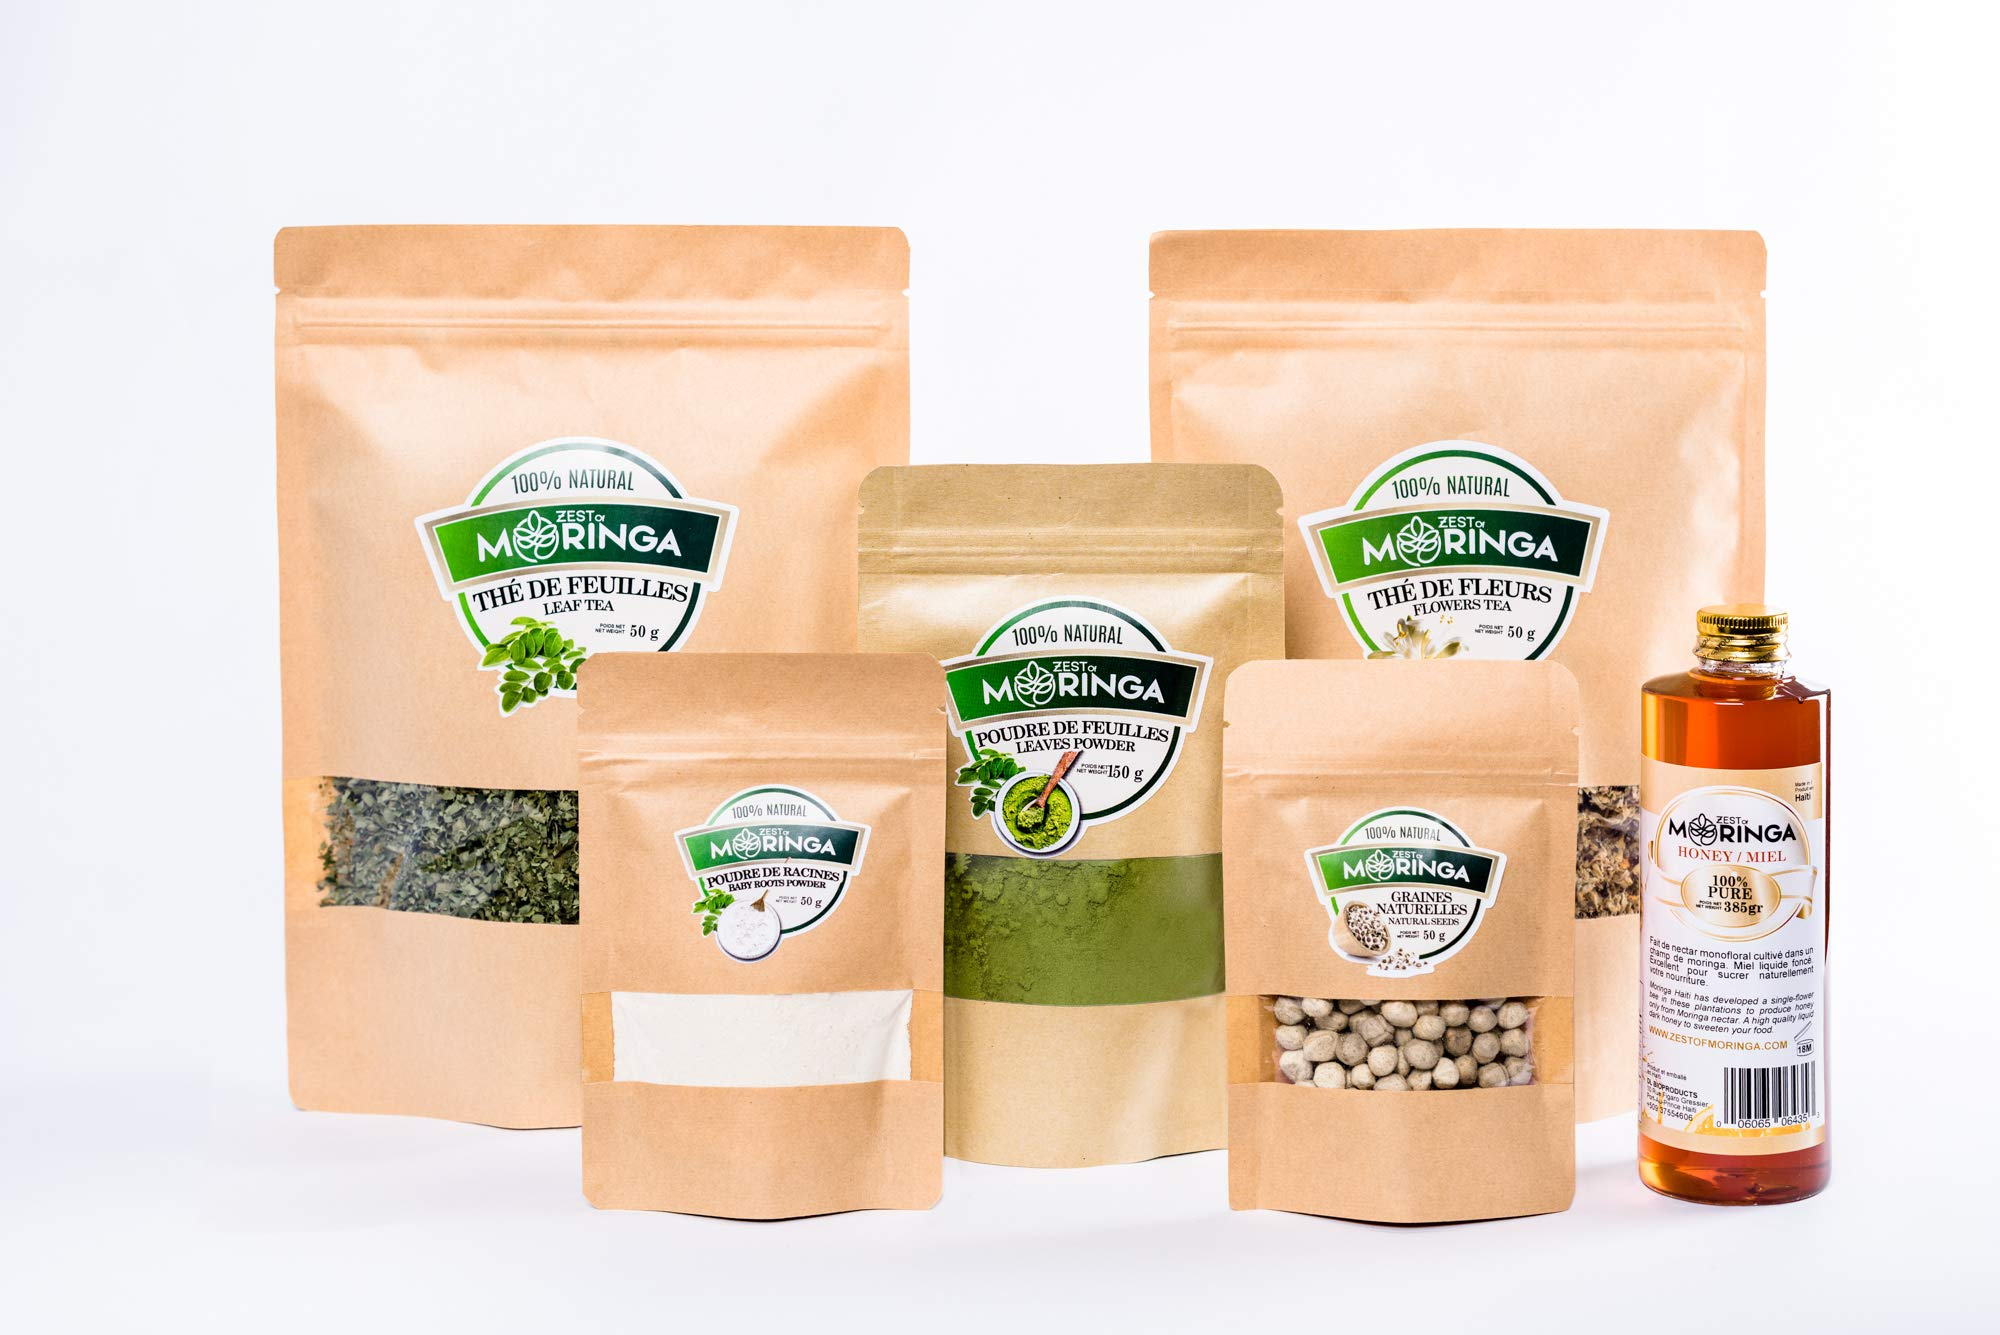 Super Healthy Moringa Oleifera Kit (6 Products) - Combos to Boost Your Immune System - Leaves Powder, Baby Roots Powder, Leafs Tea, Flowers Tea, Roasted Seeds, Mono-Floral Honey